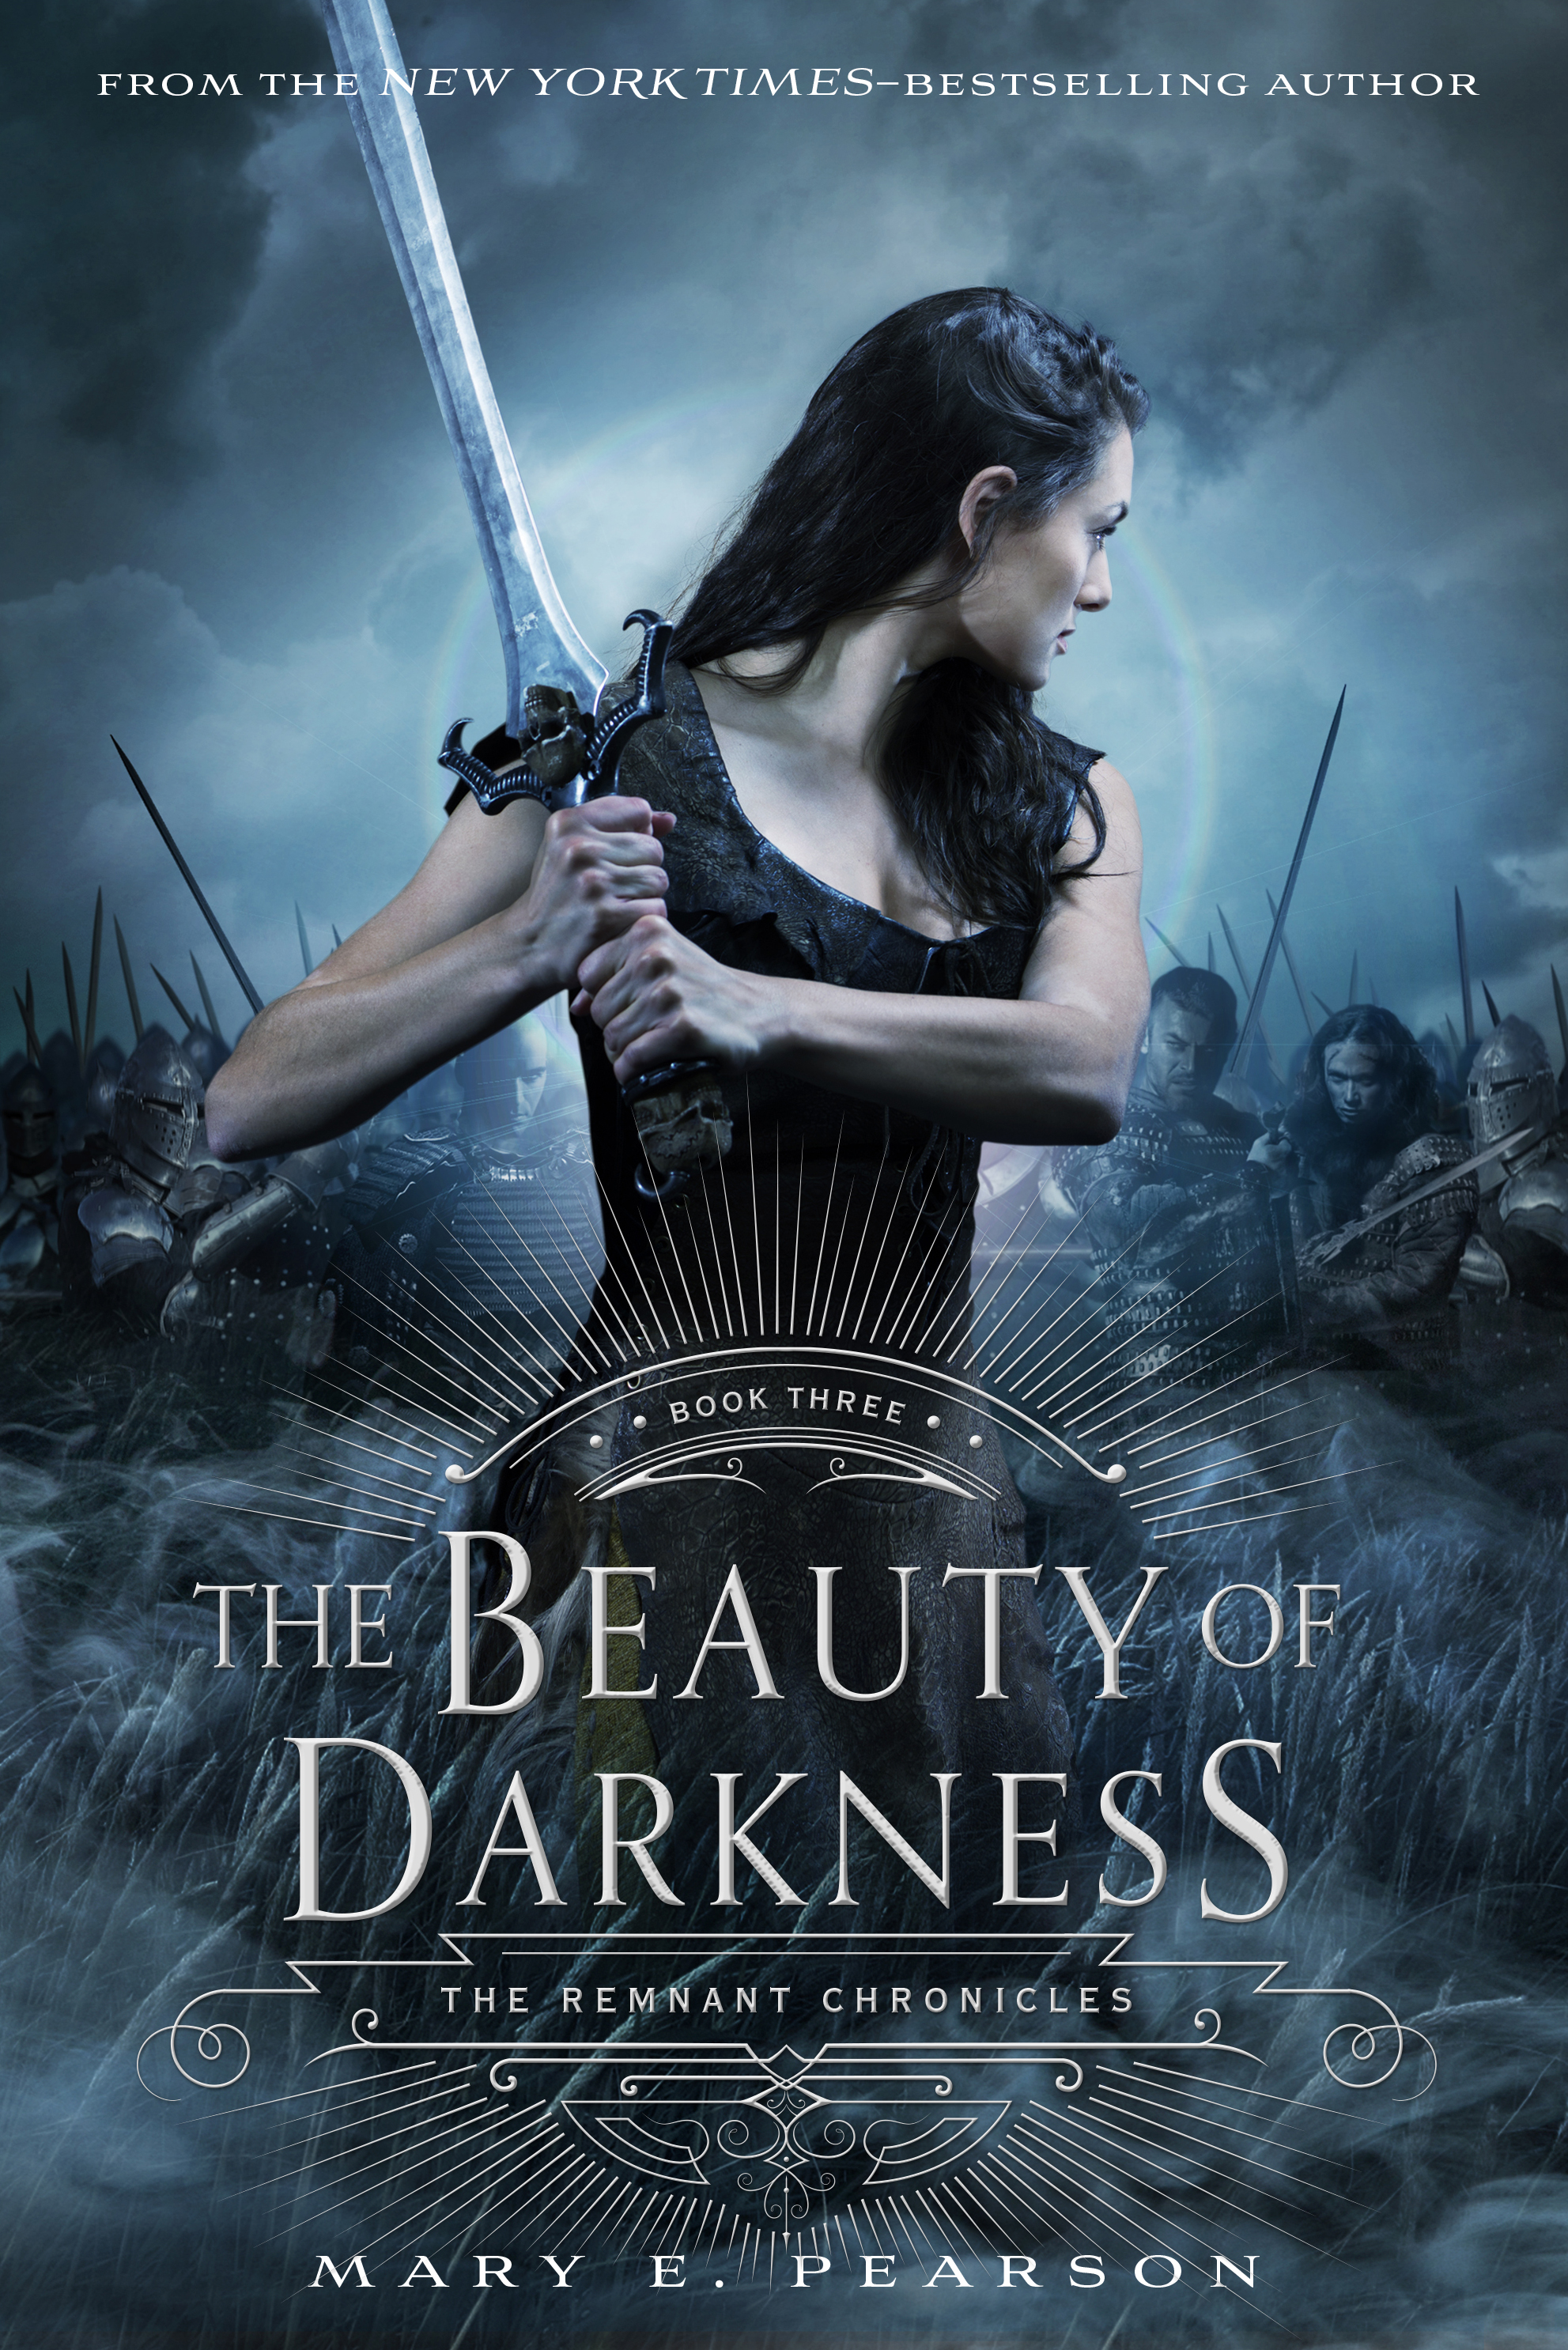 The Beauty of Darkness The Remnant Chronicles: Book Three